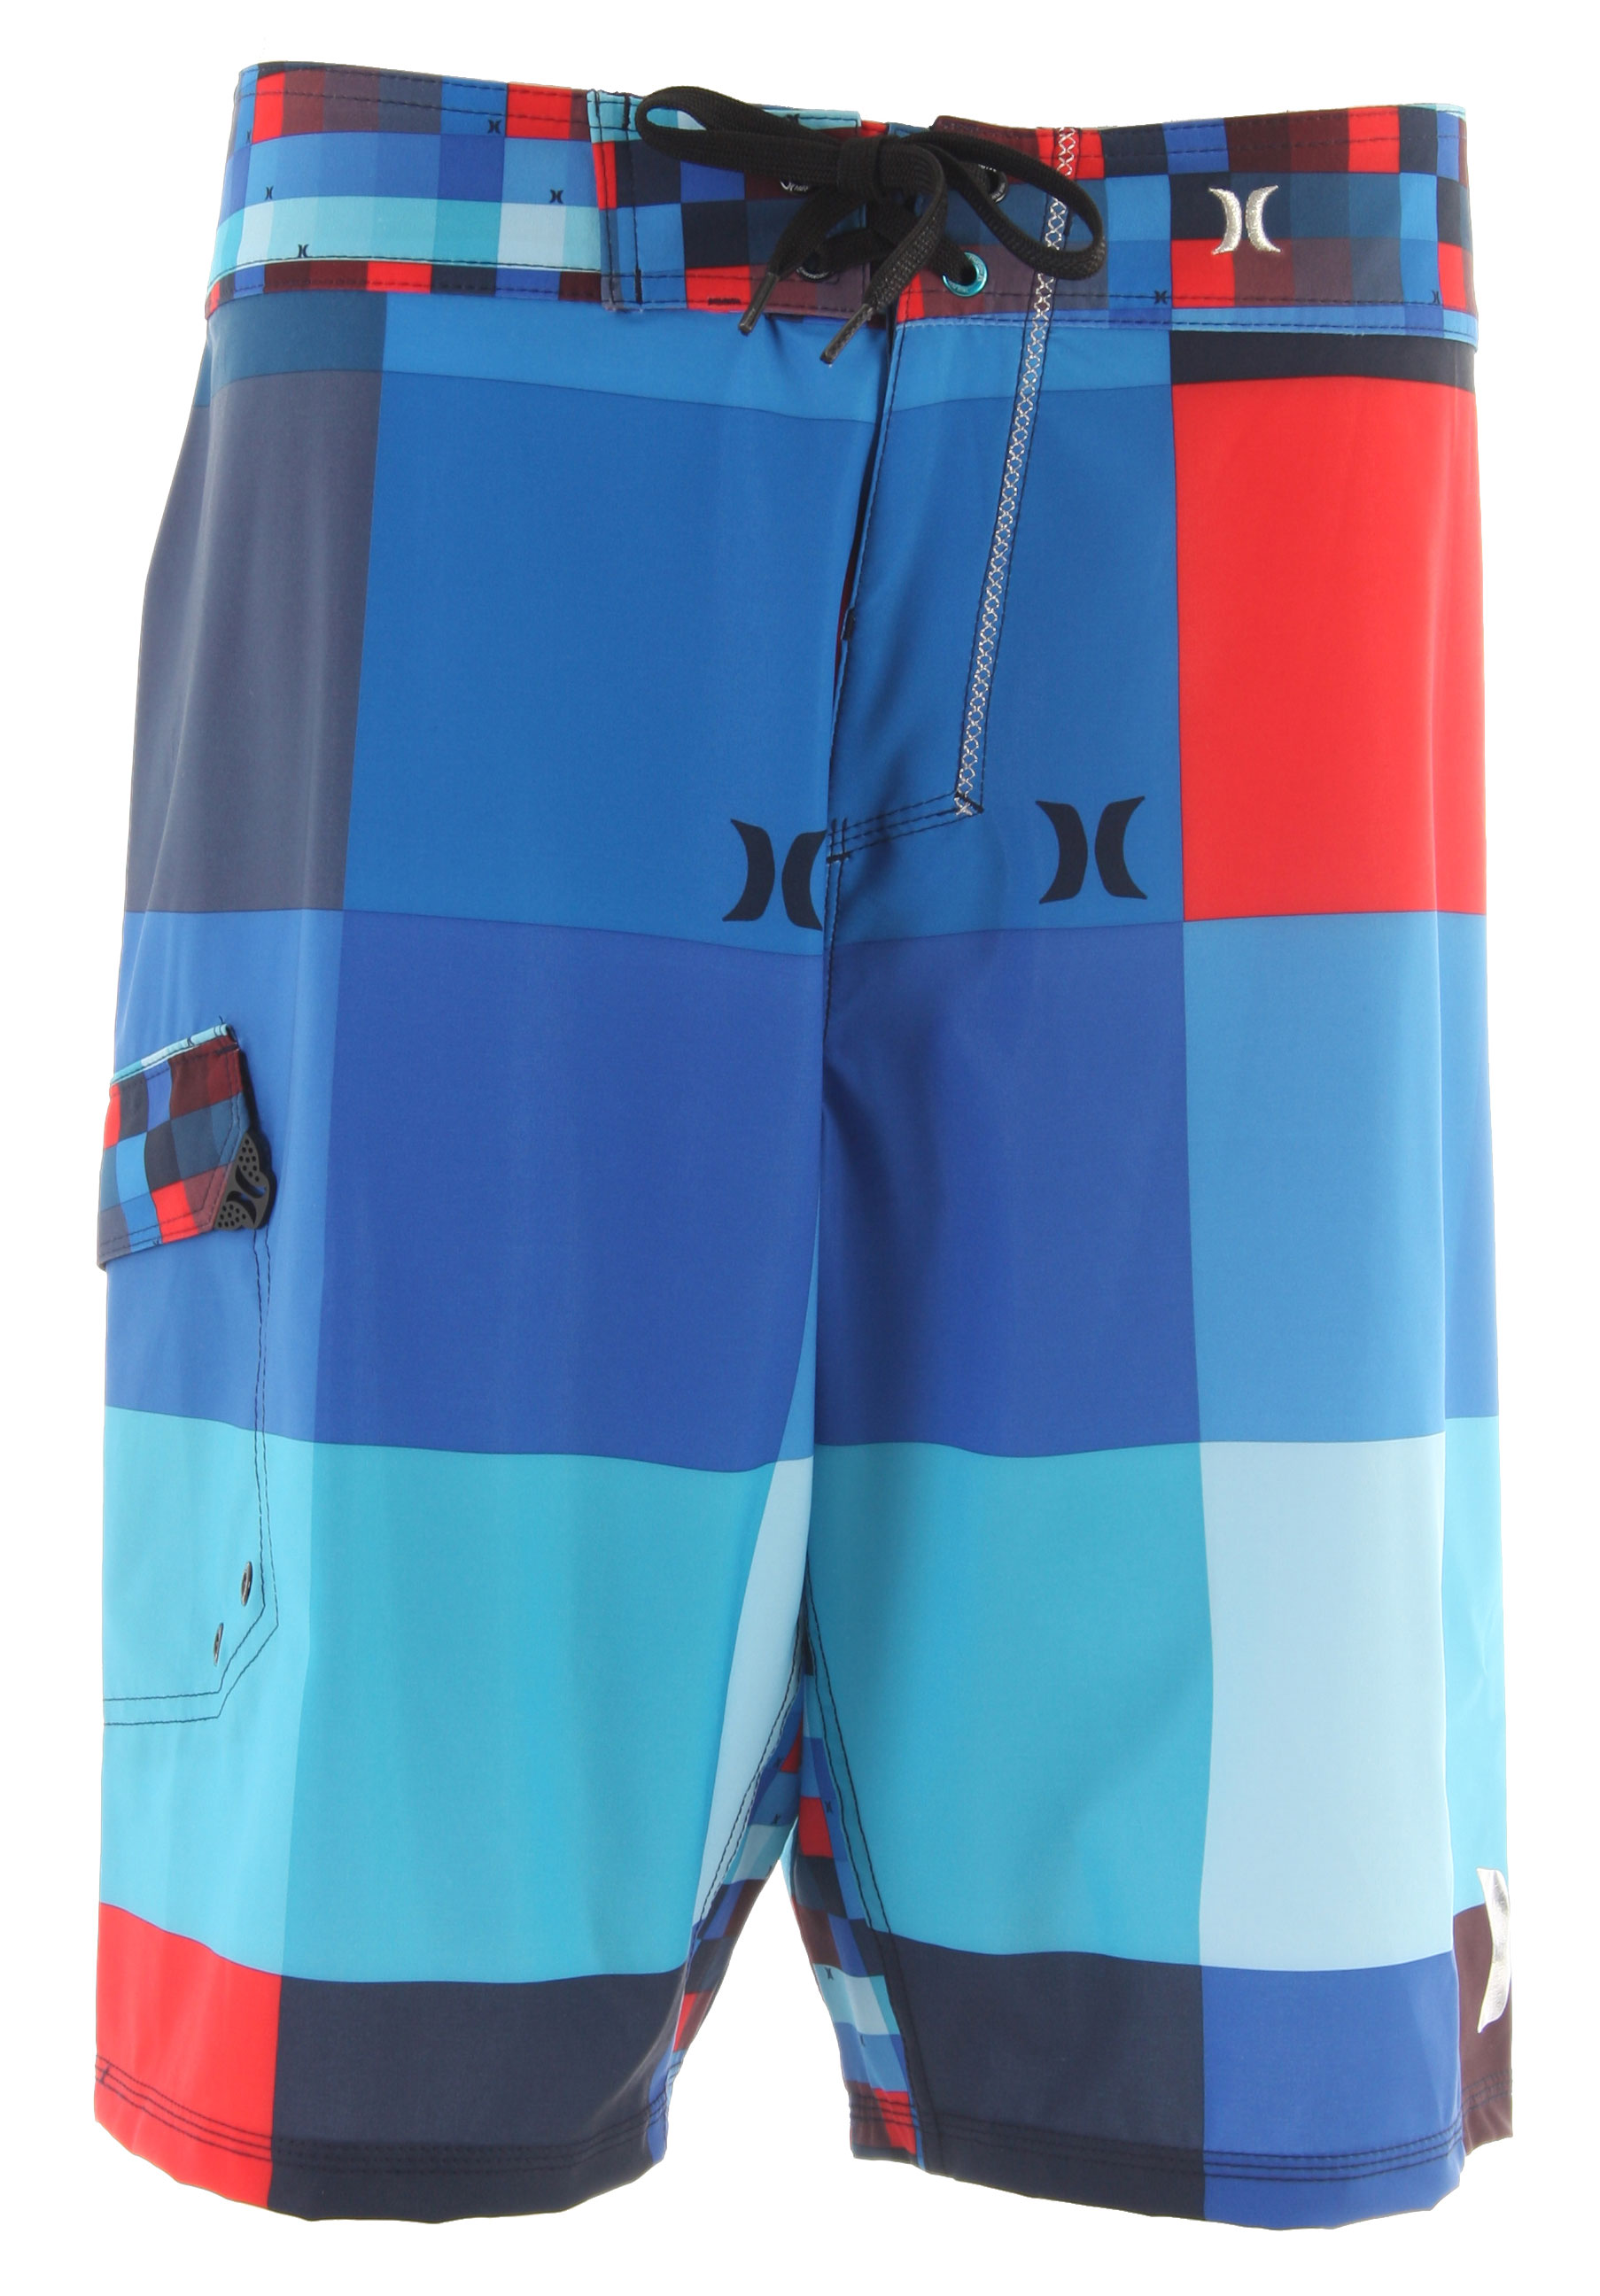 Surf Key Features of the Hurley Phantom 60 Kings Road Boardshorts: True Performance Fit Recycled Phantom 60% Stretch Seasonal Print Patented Ez Fly Closure Signature Foil Branding Metallic Embroidery Performance Water Repellency - $61.95